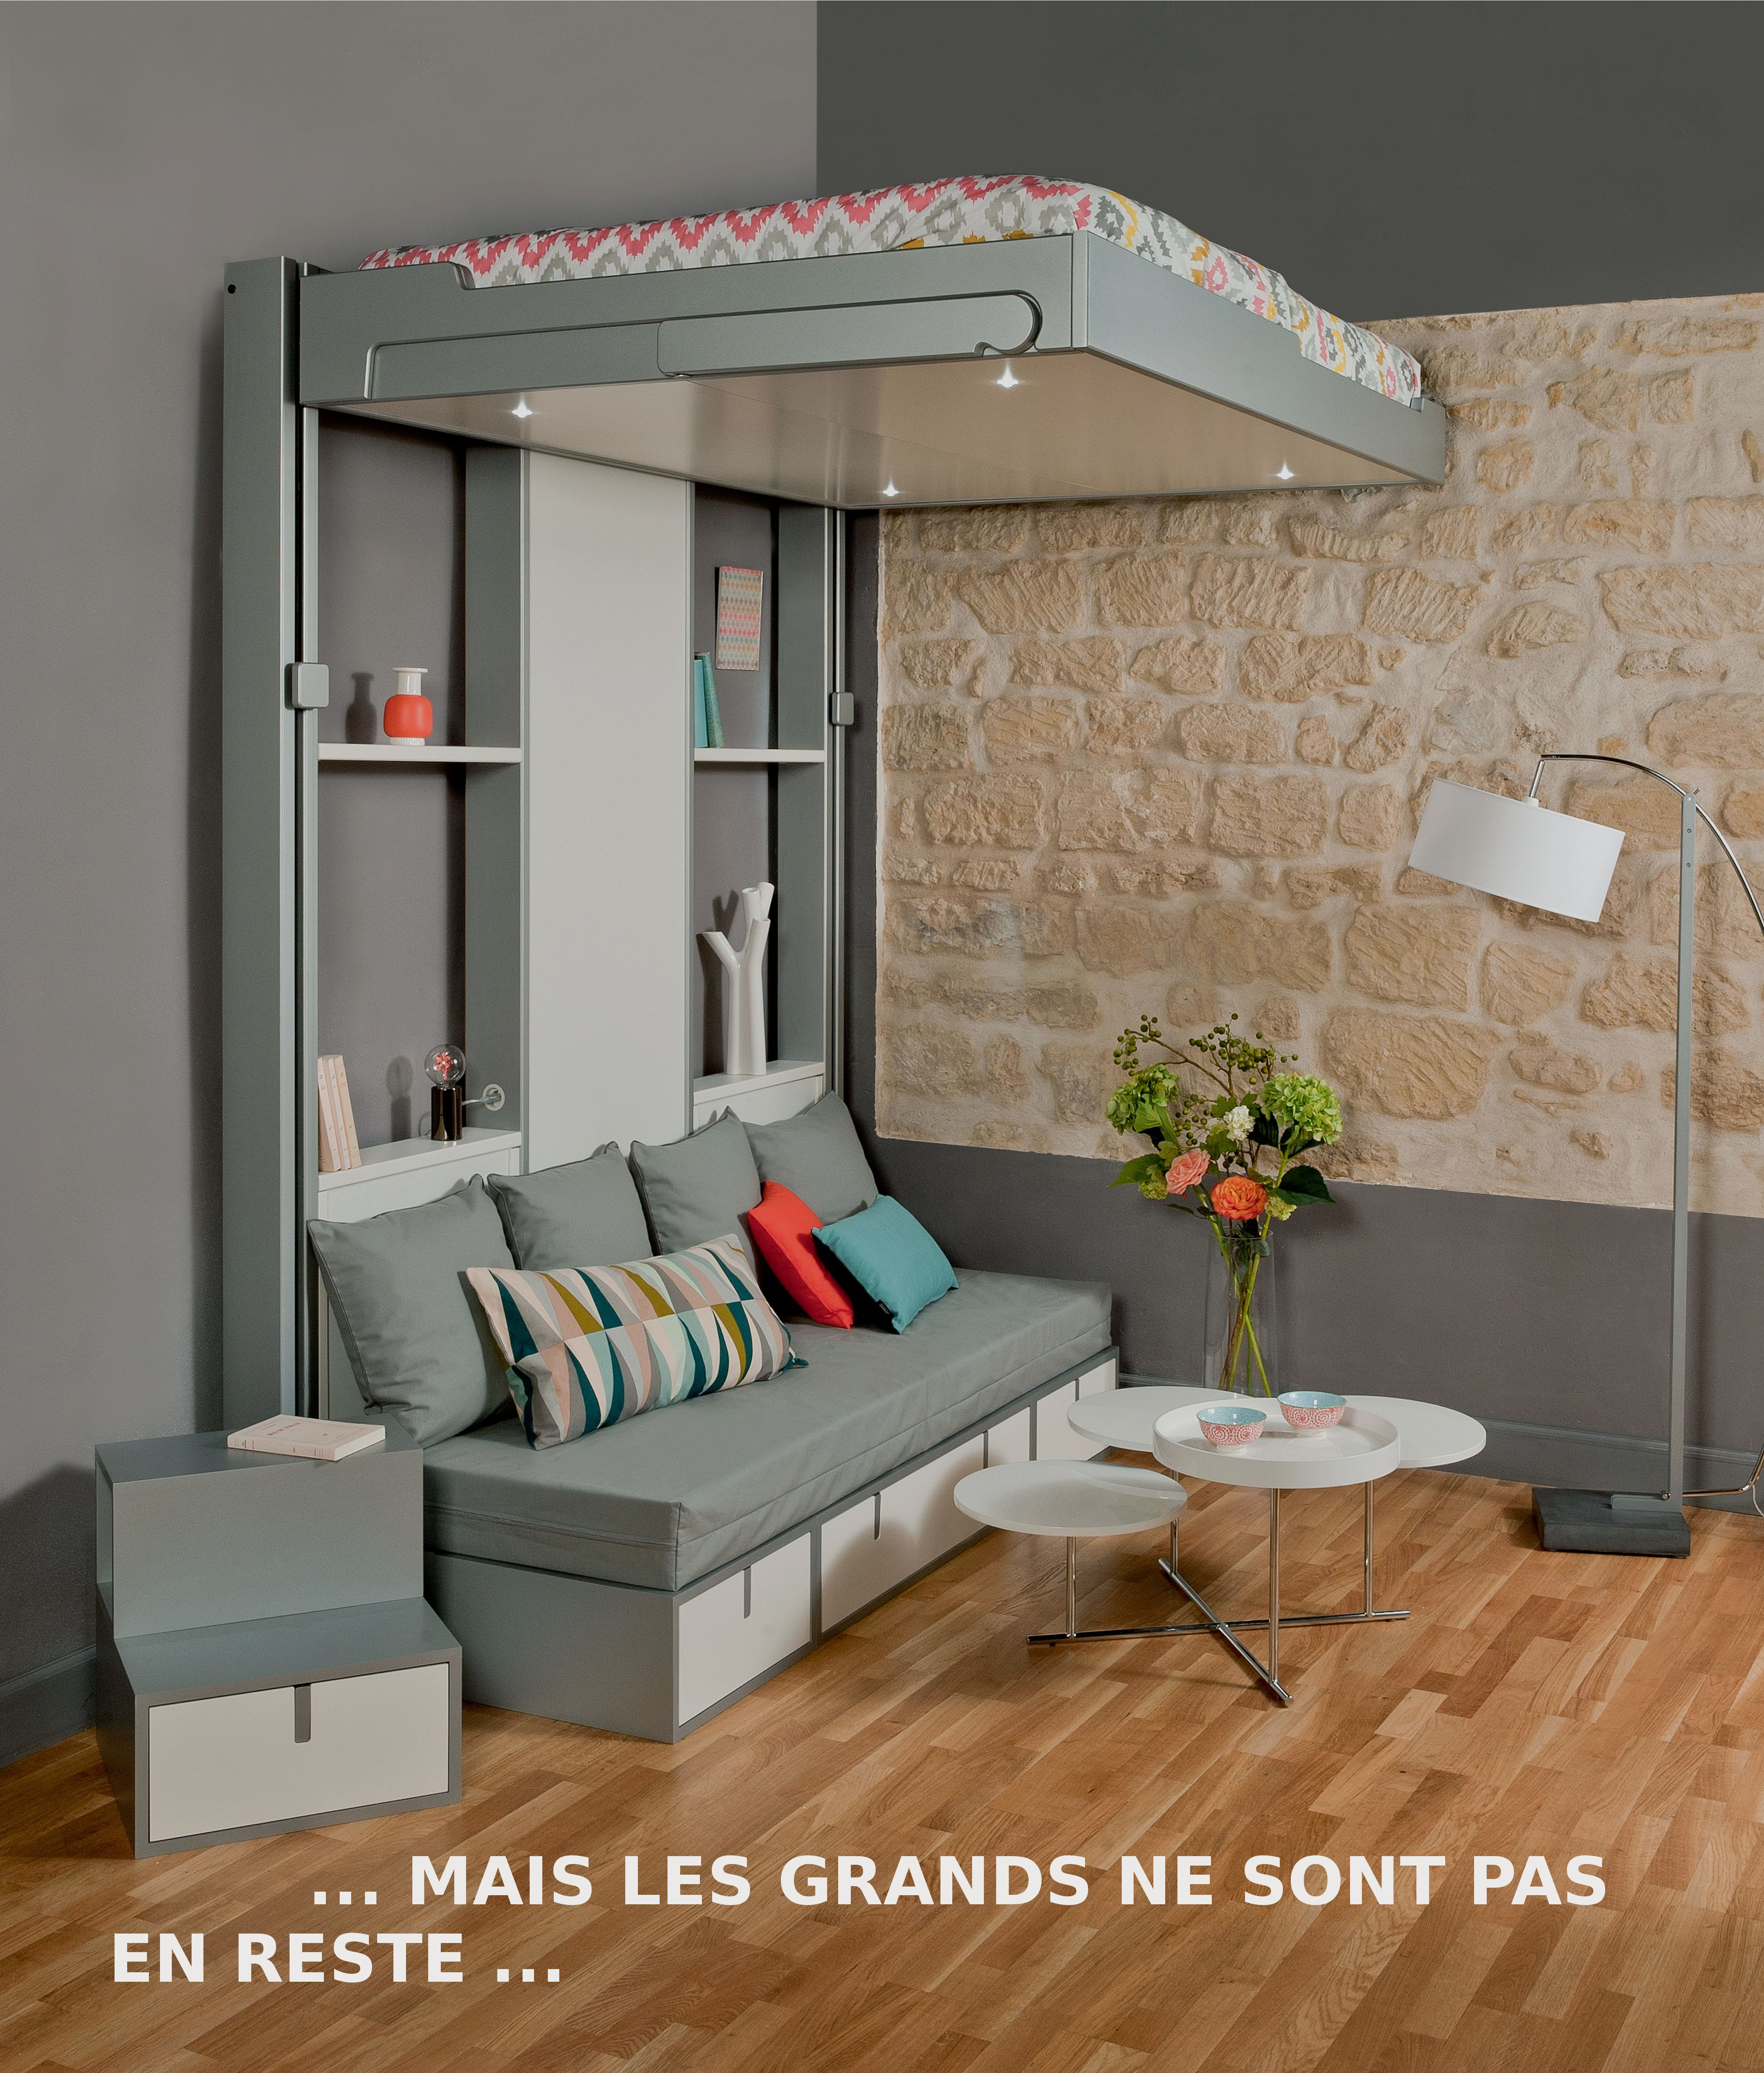 Slide for loft bed  Mobile bed and couch for a studioflat Lit escamotable et banquette